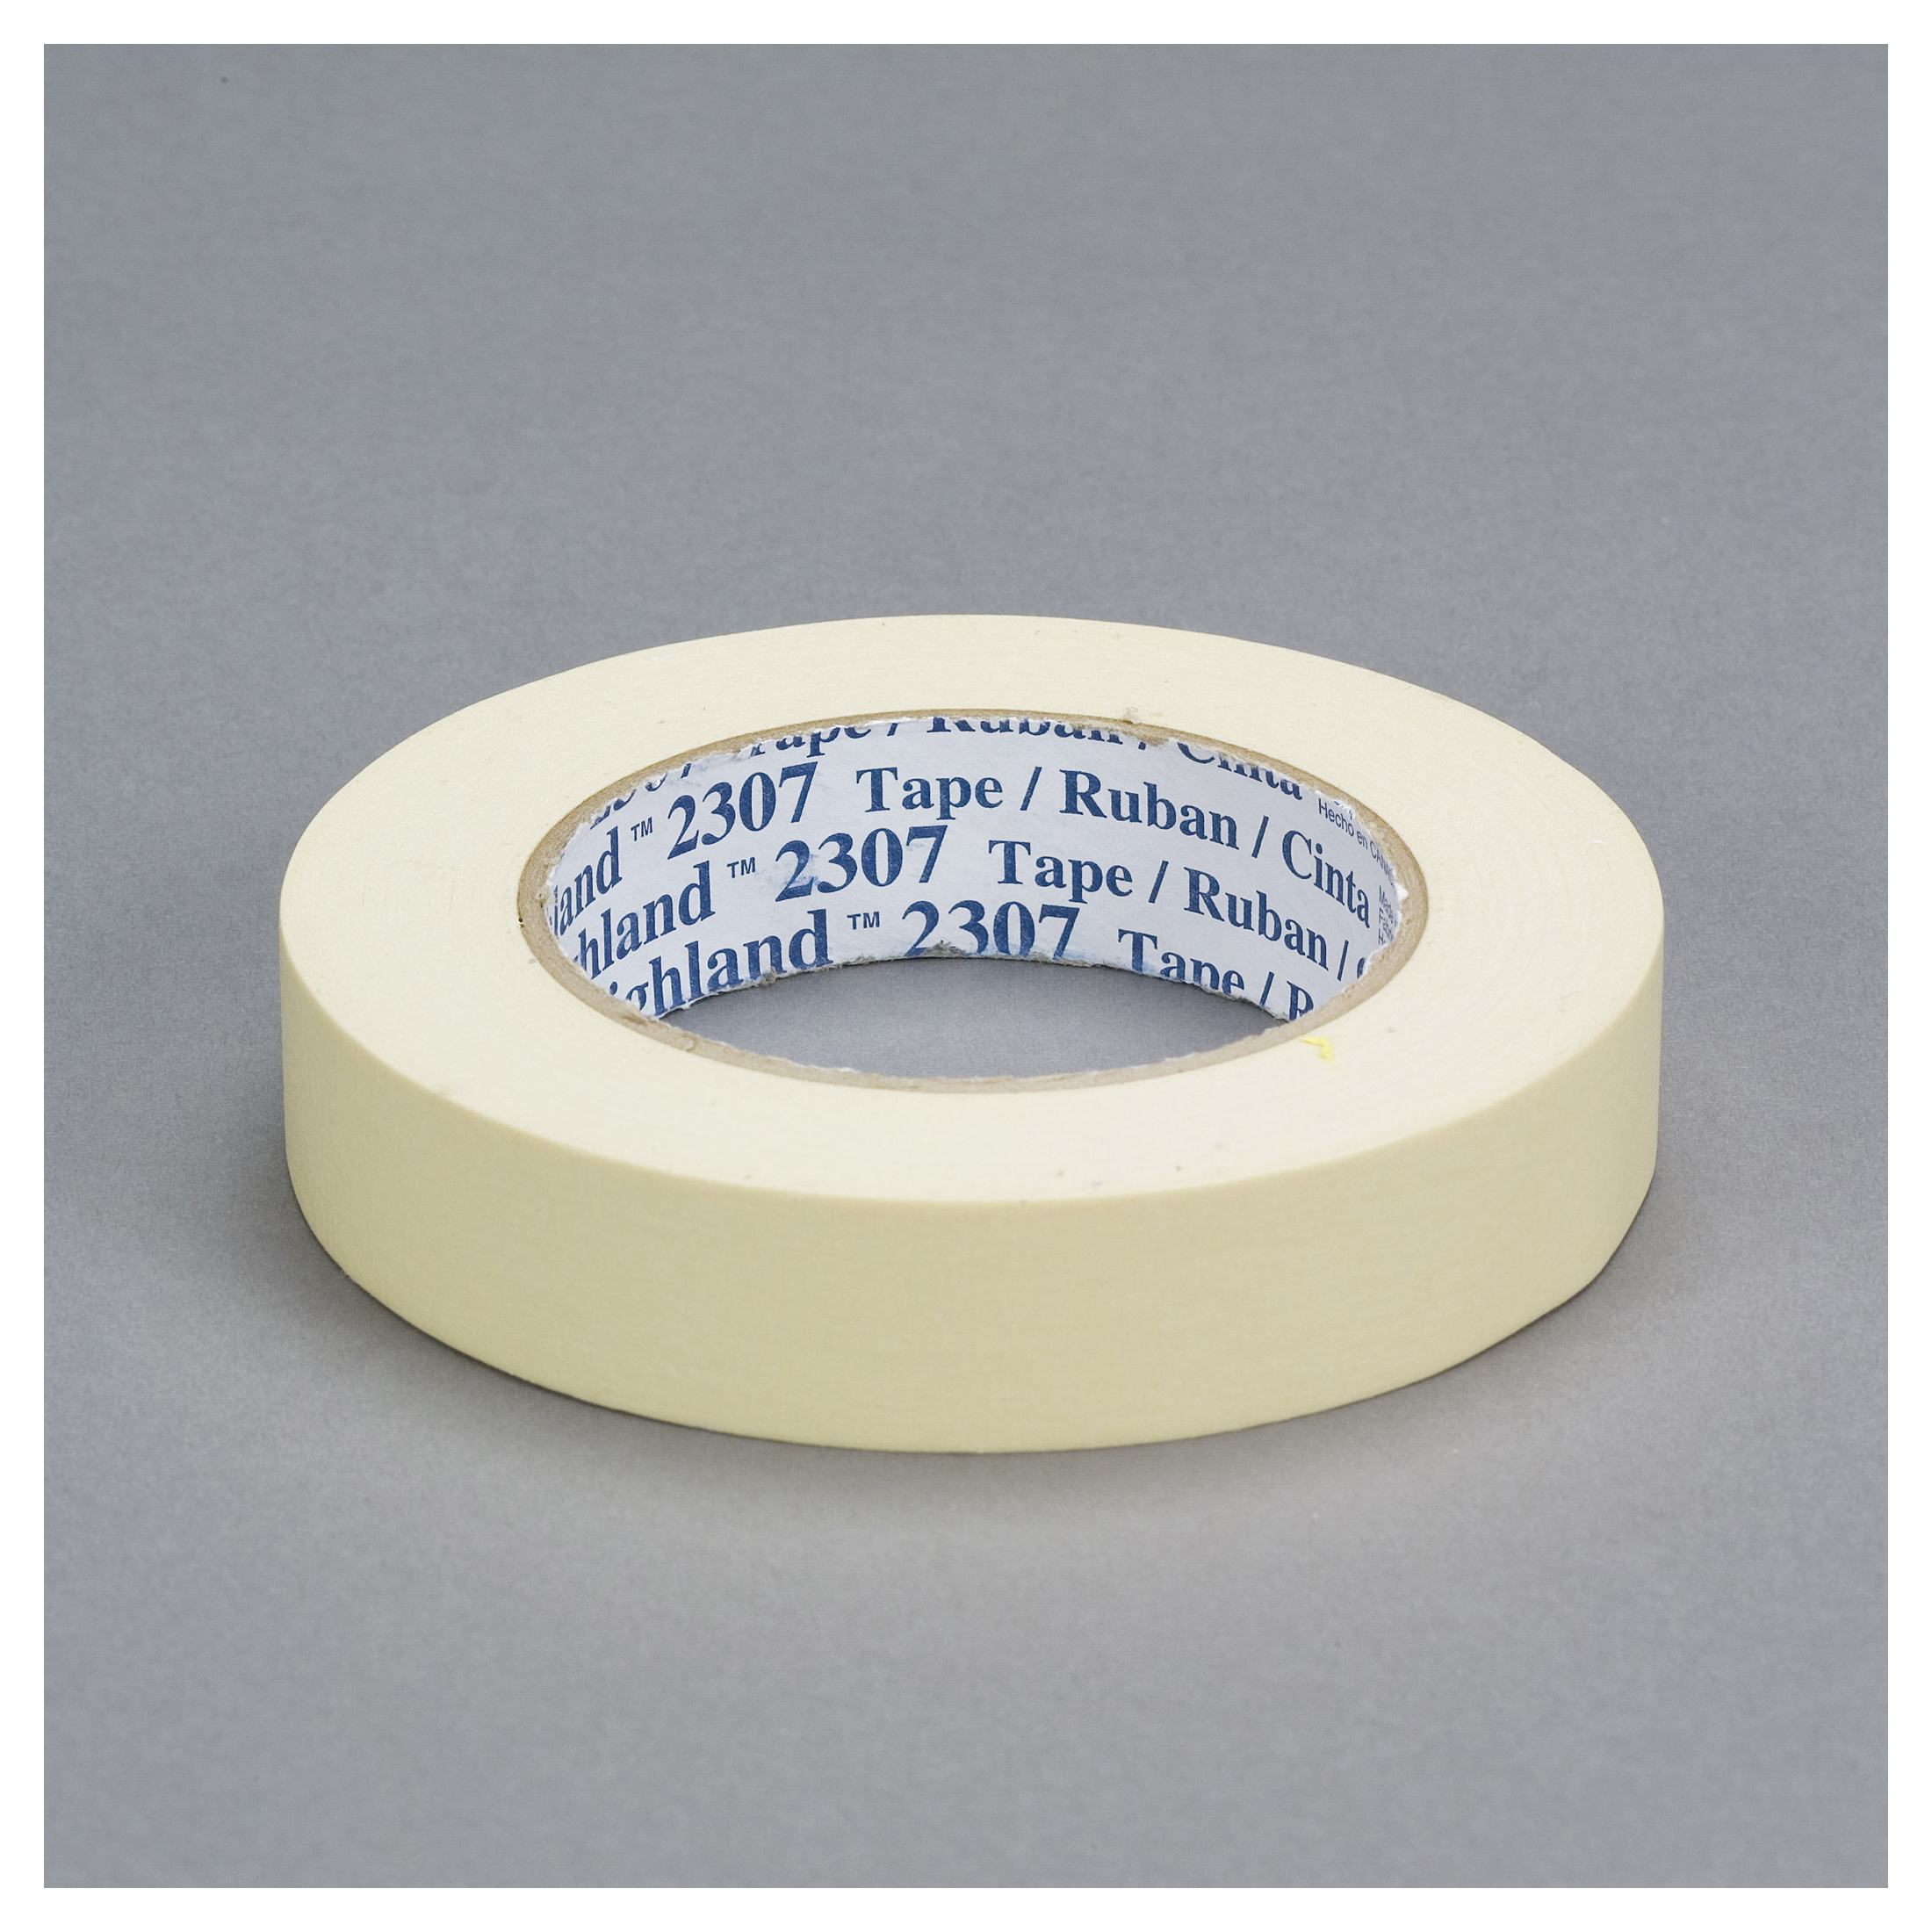 3M™ 021200-71121 General Purpose Masking Tape, 55 m L x 72 mm W, 5.2 mil THK, Rubber Adhesive, Crepe Paper Backing